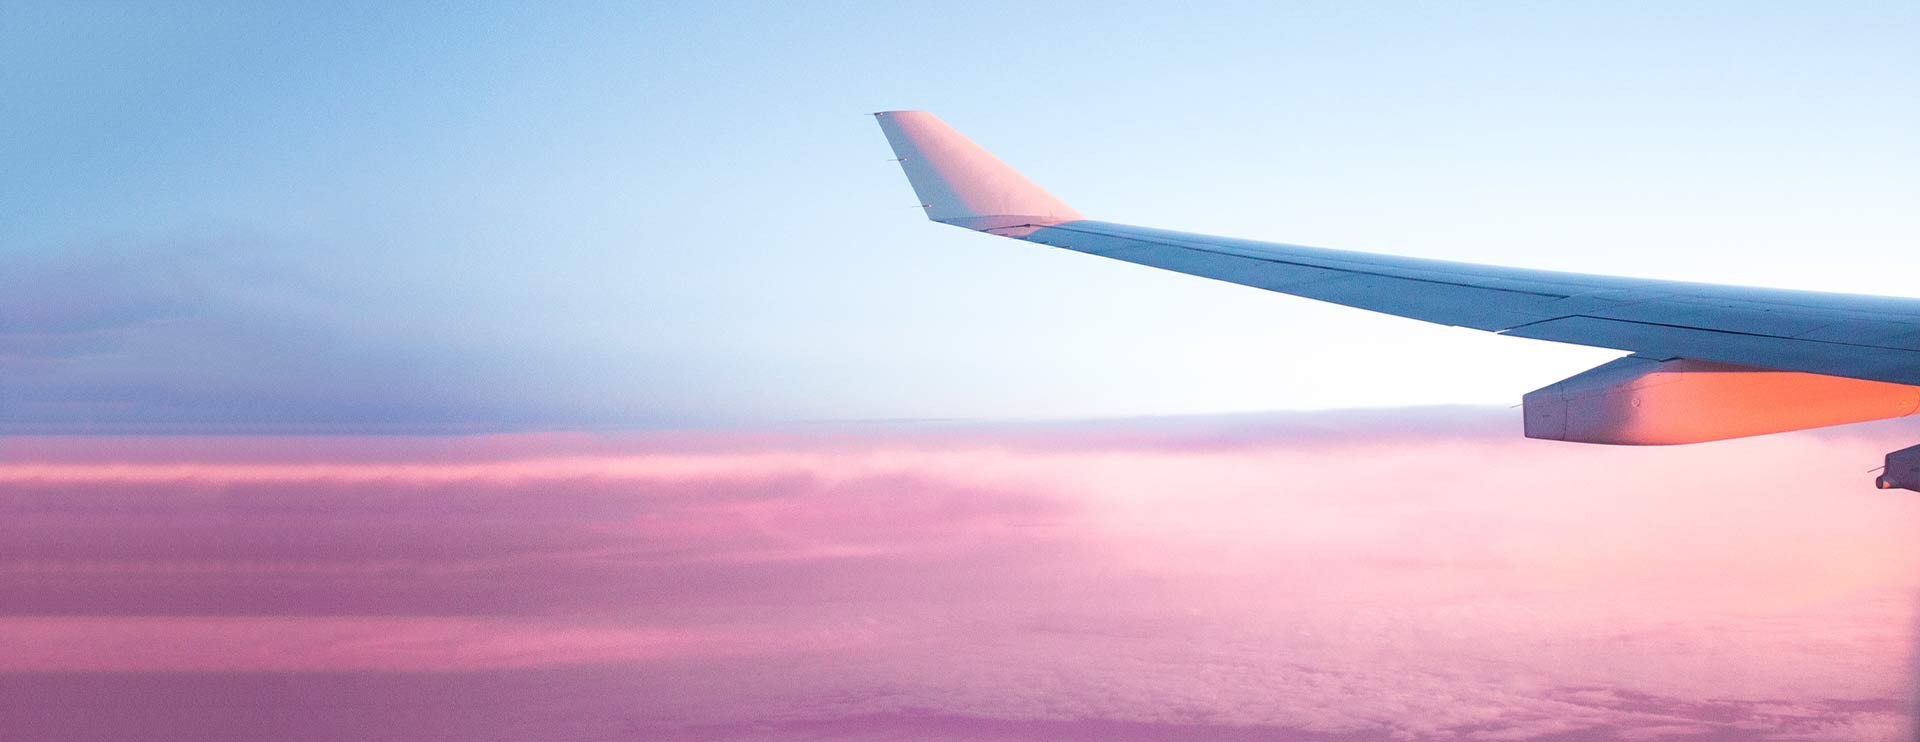 Airplane wing at sunset capturing the ease of AirPlus travel trade payment solutions